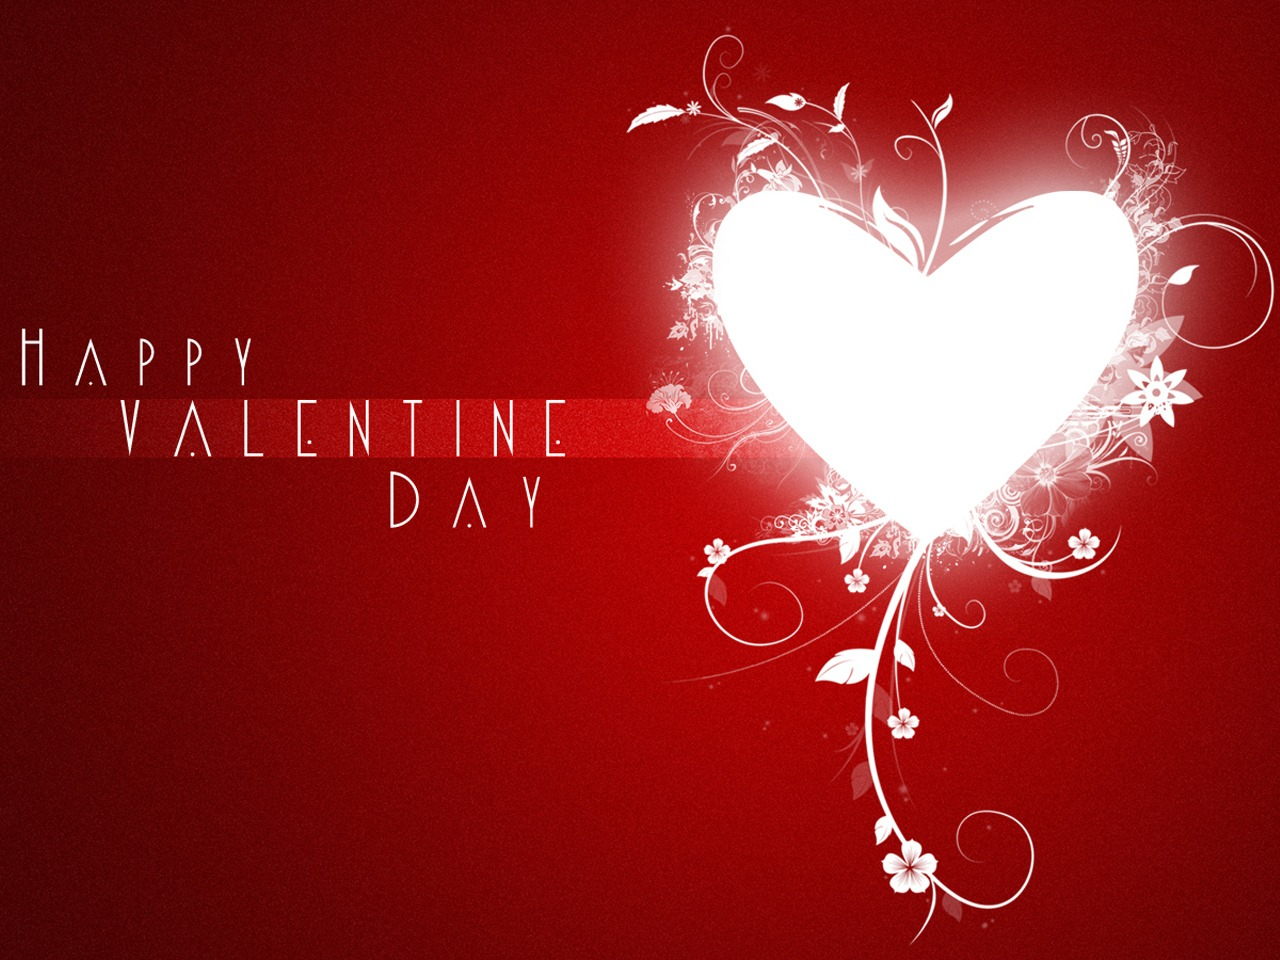 1280x960px Happy Valentine Day Backgrounds by Mahmud Hassan 1280x960